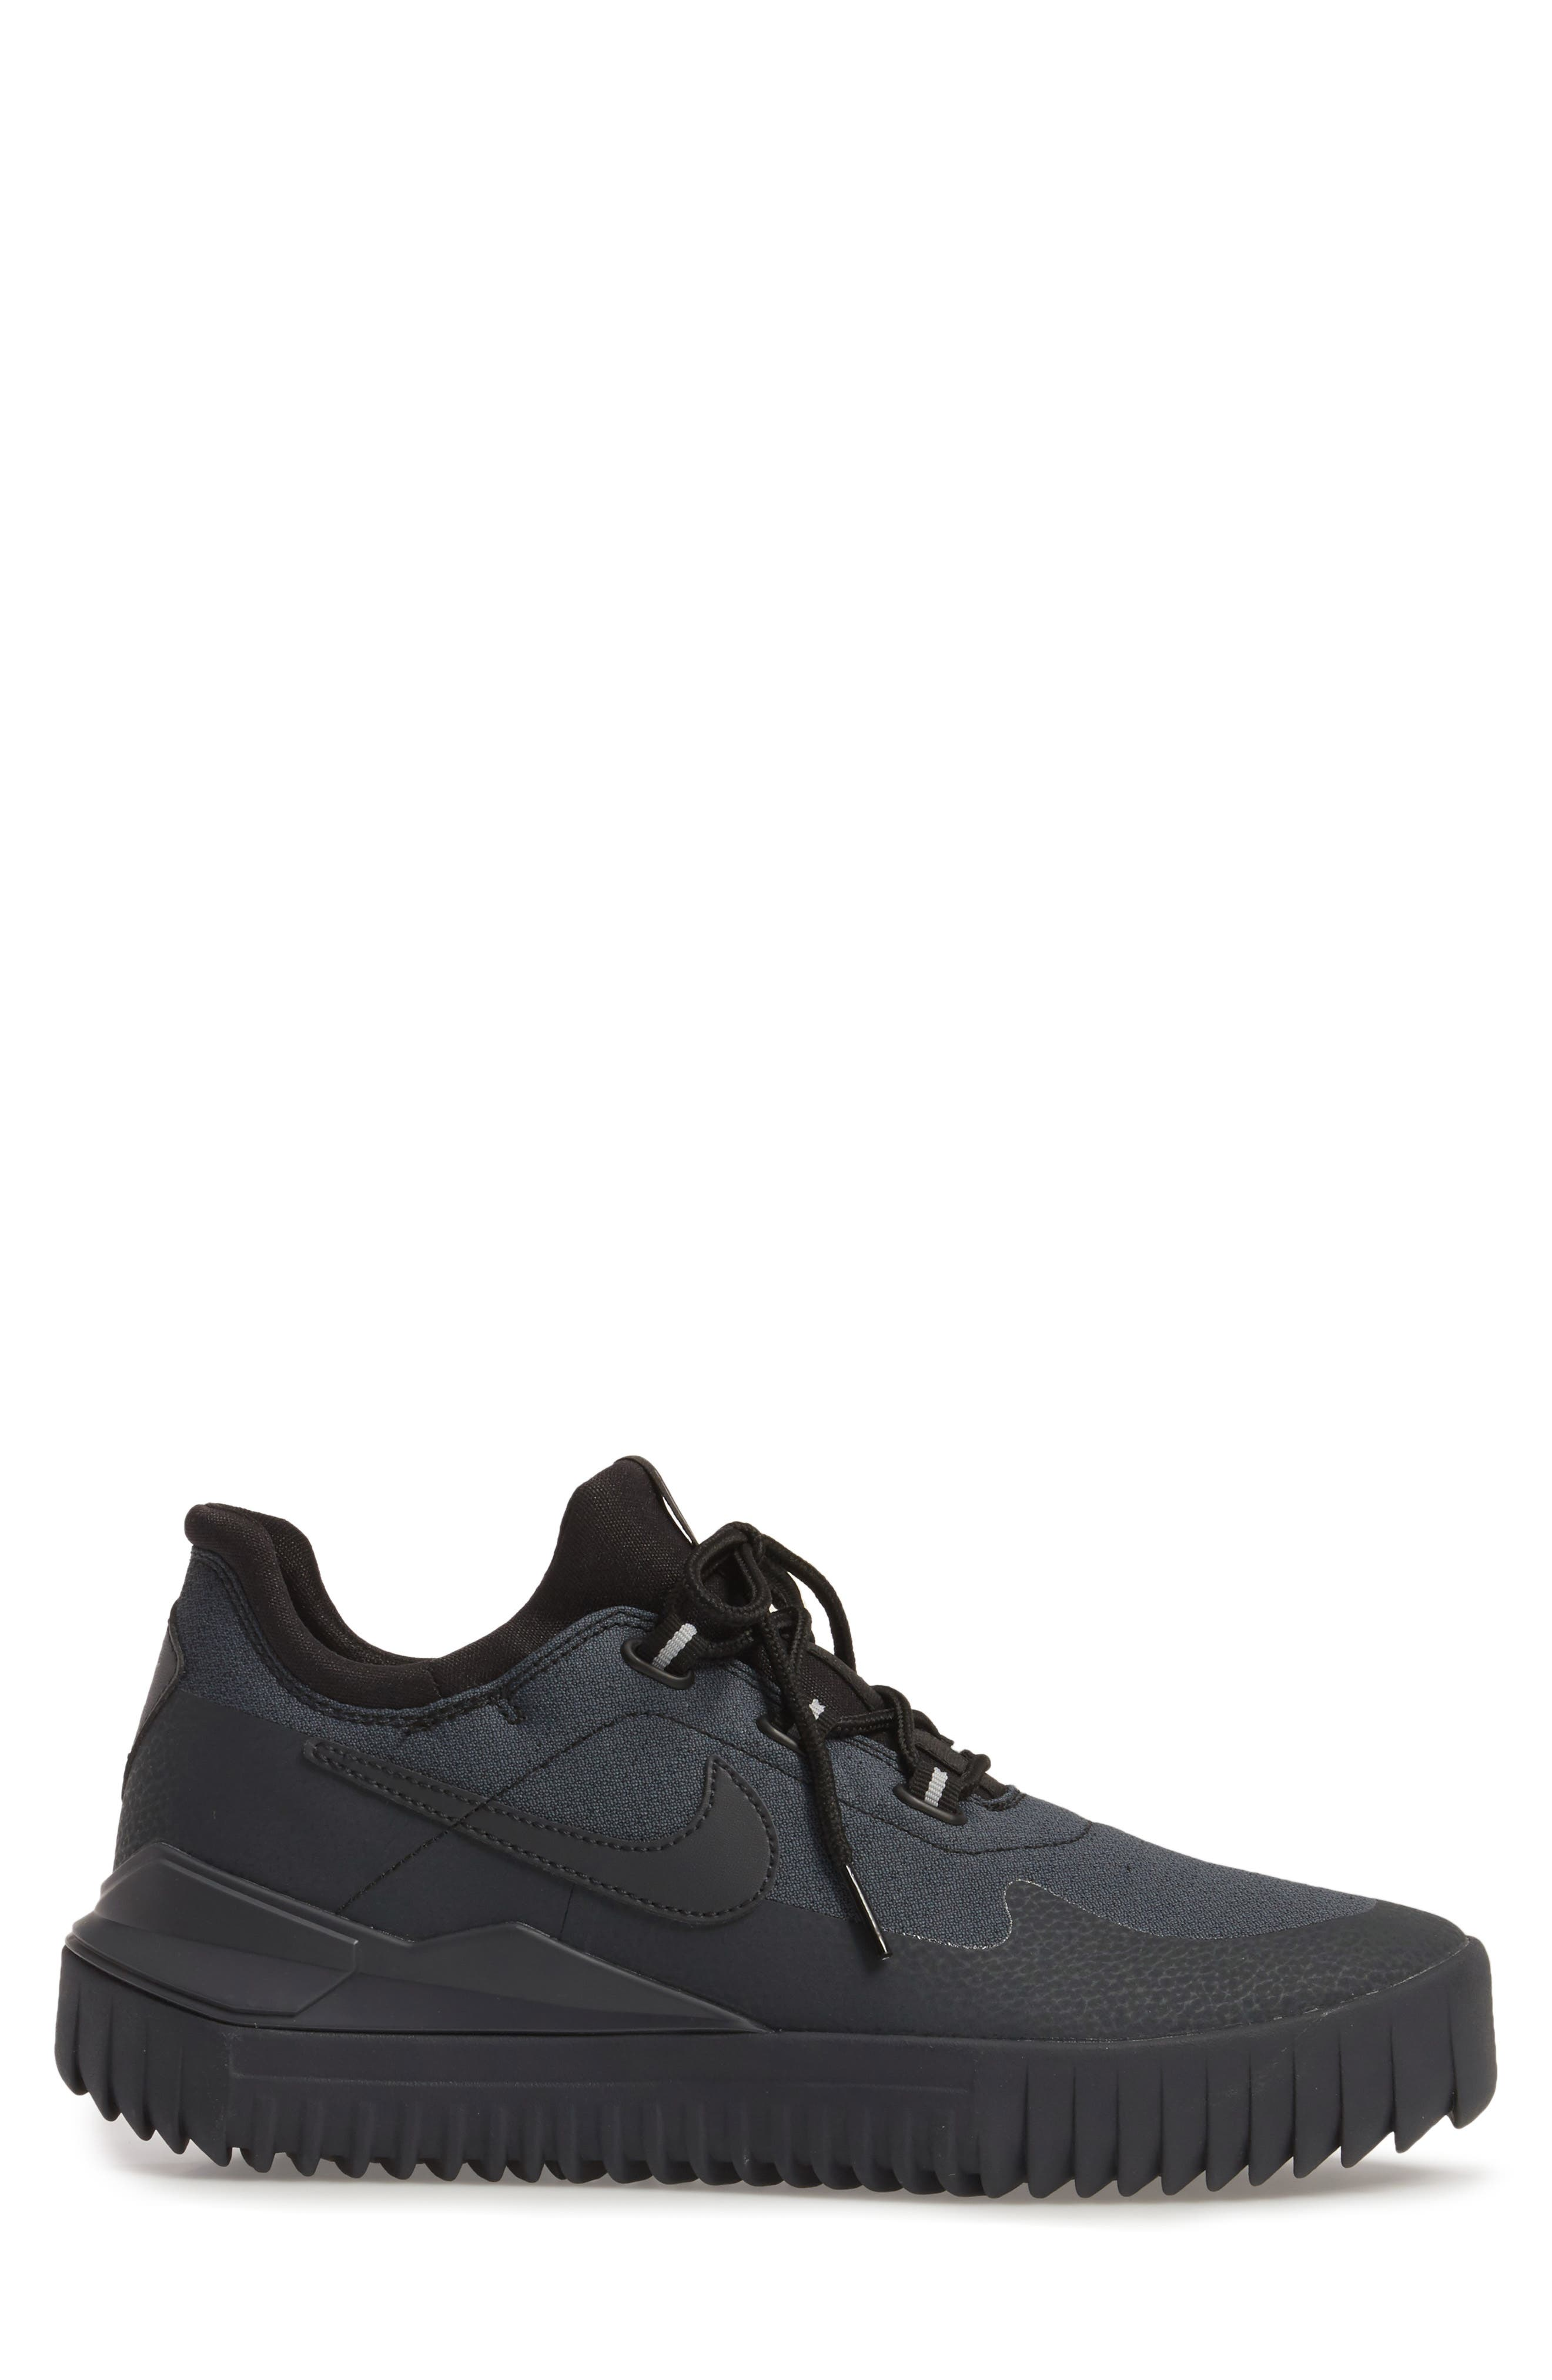 Air Wild Sneaker,                             Alternate thumbnail 3, color,                             Black/ Anthracite/ Grey